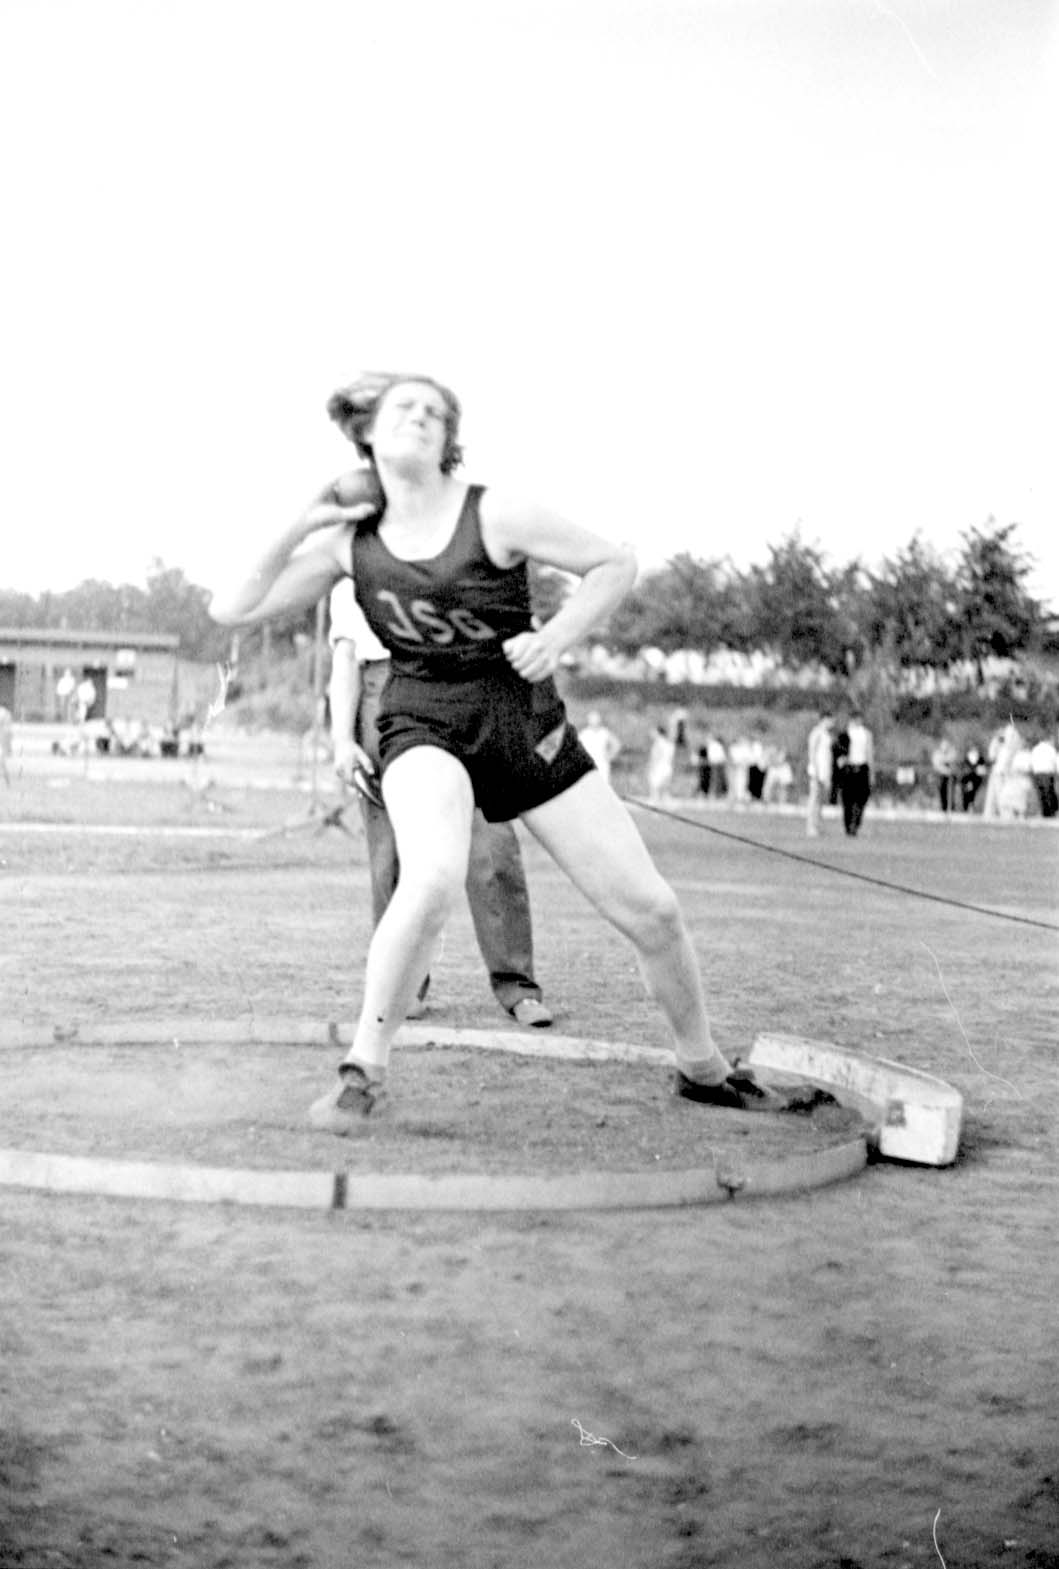 Berlin, Germany, 04/07/1937, Ingeborg Mello, winner of the shot-put competition at a Jewish sports tournament.